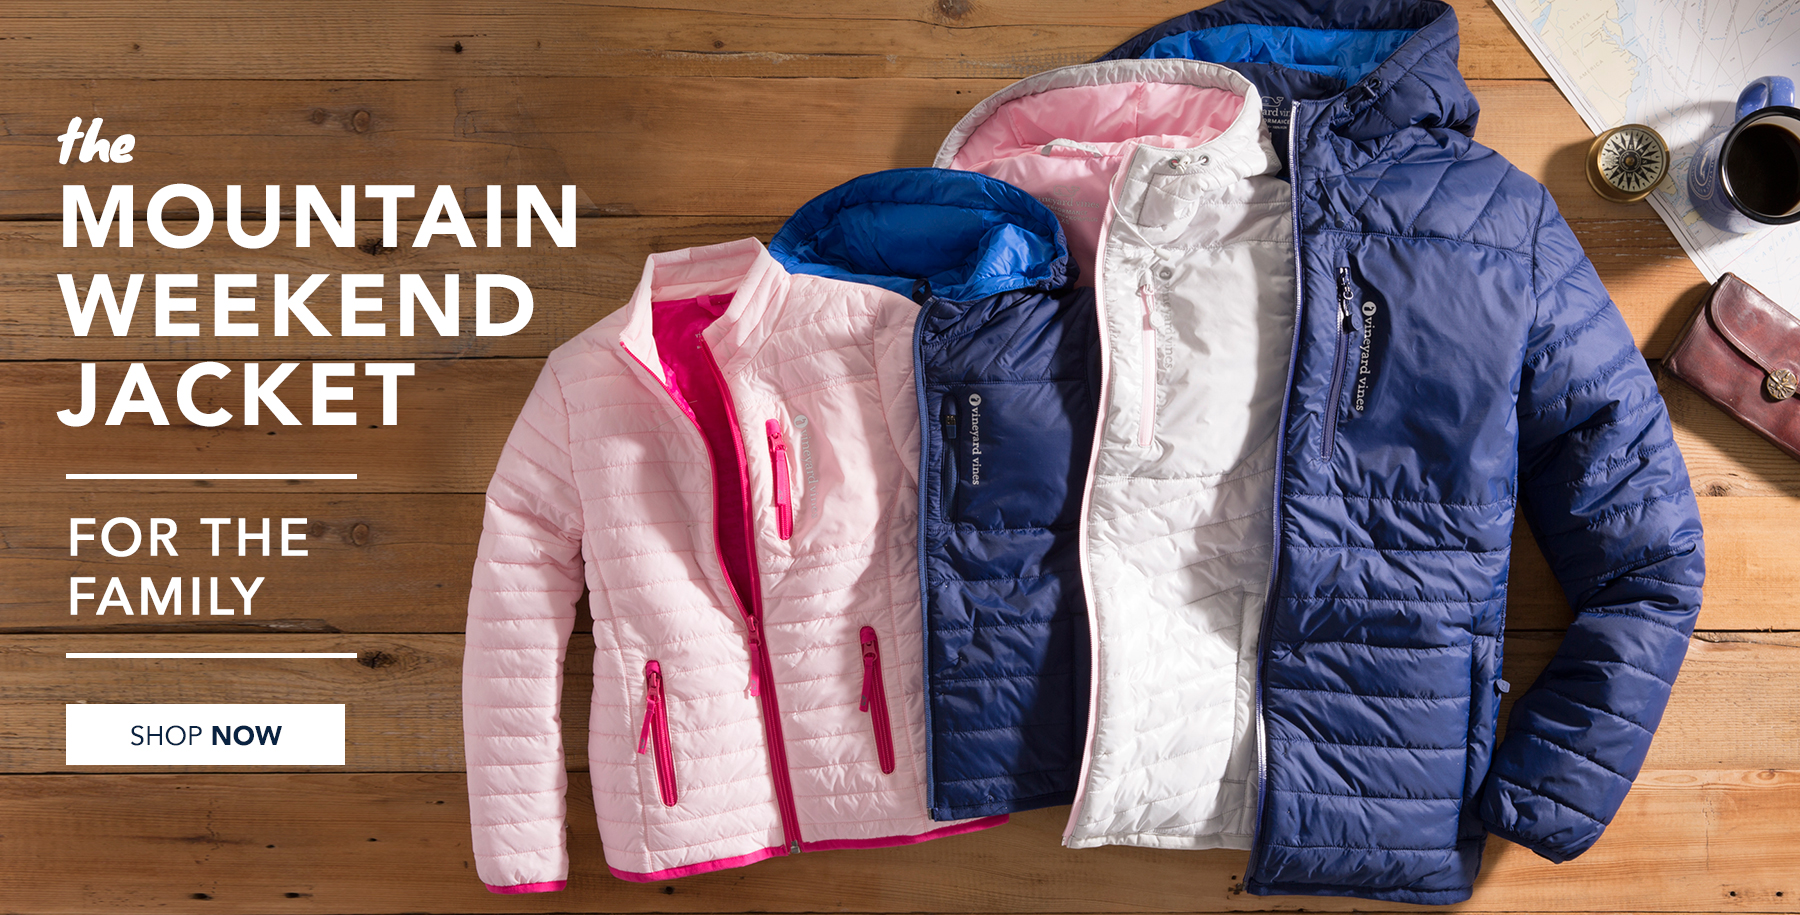 The mountain weekend jacket for the family. Shop mountain weekend jackets now.